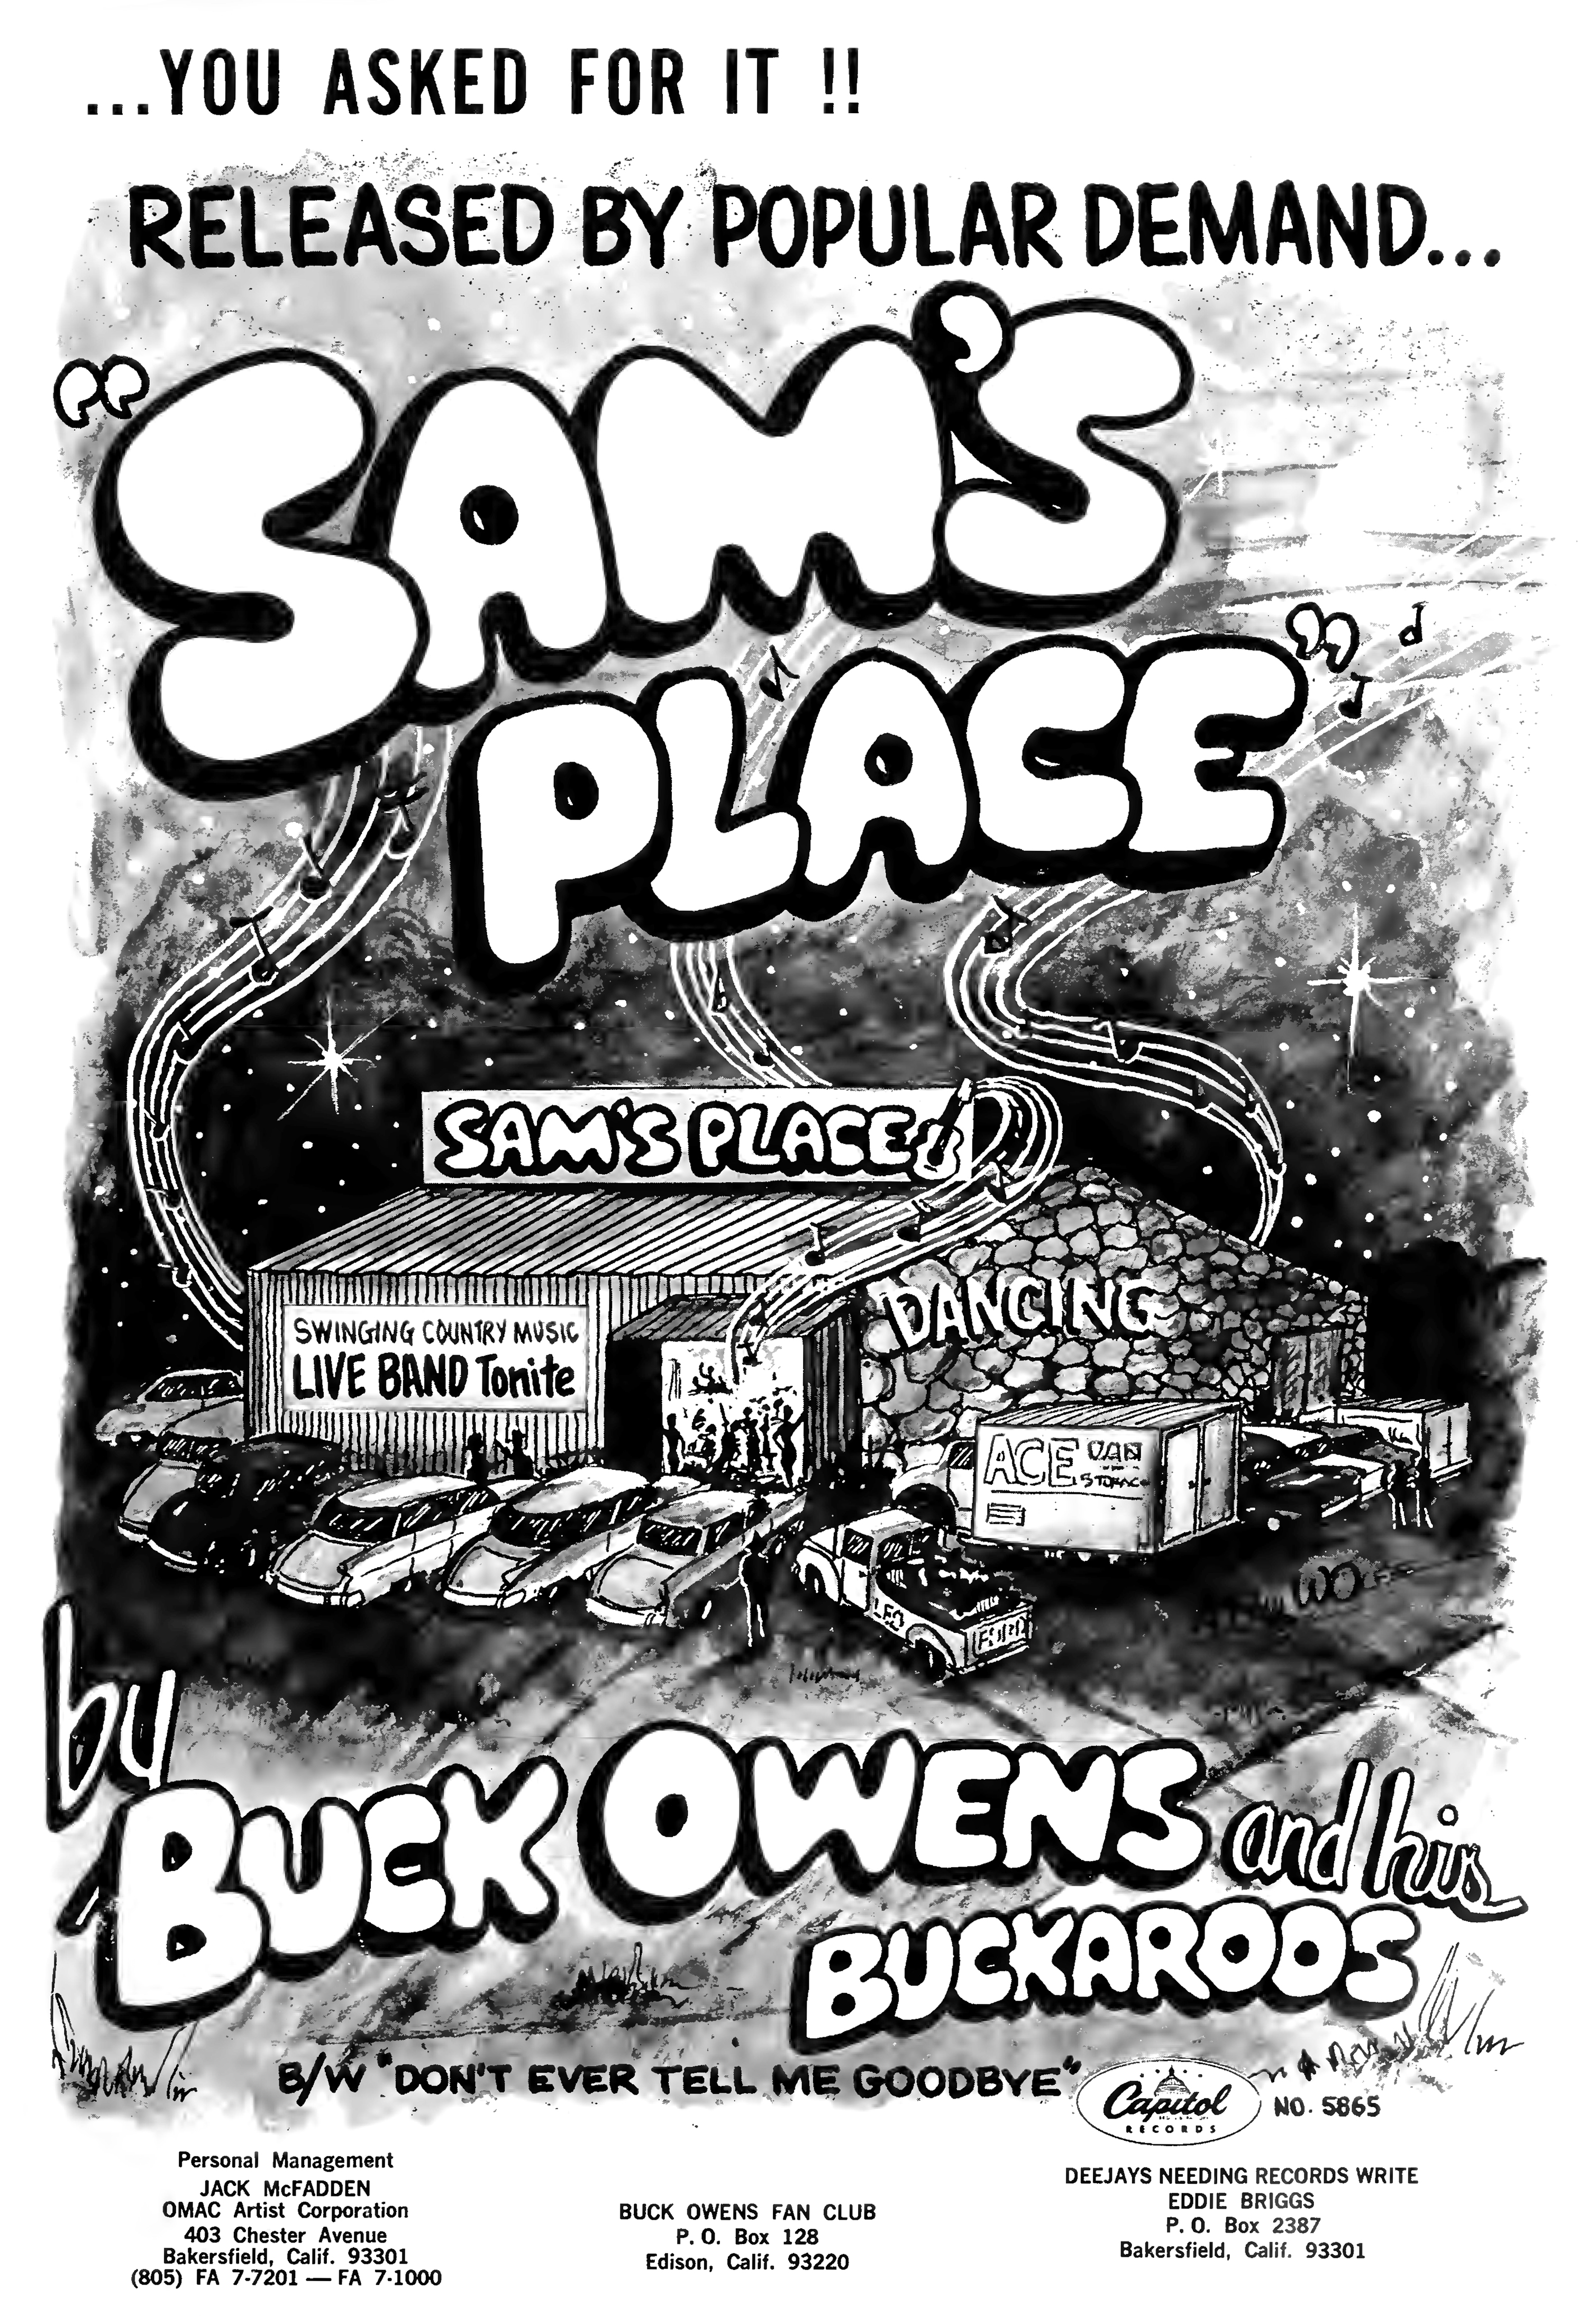 Buck Owens and His Buckaroos - 'Sam's Place' - Capitol Records - 1967